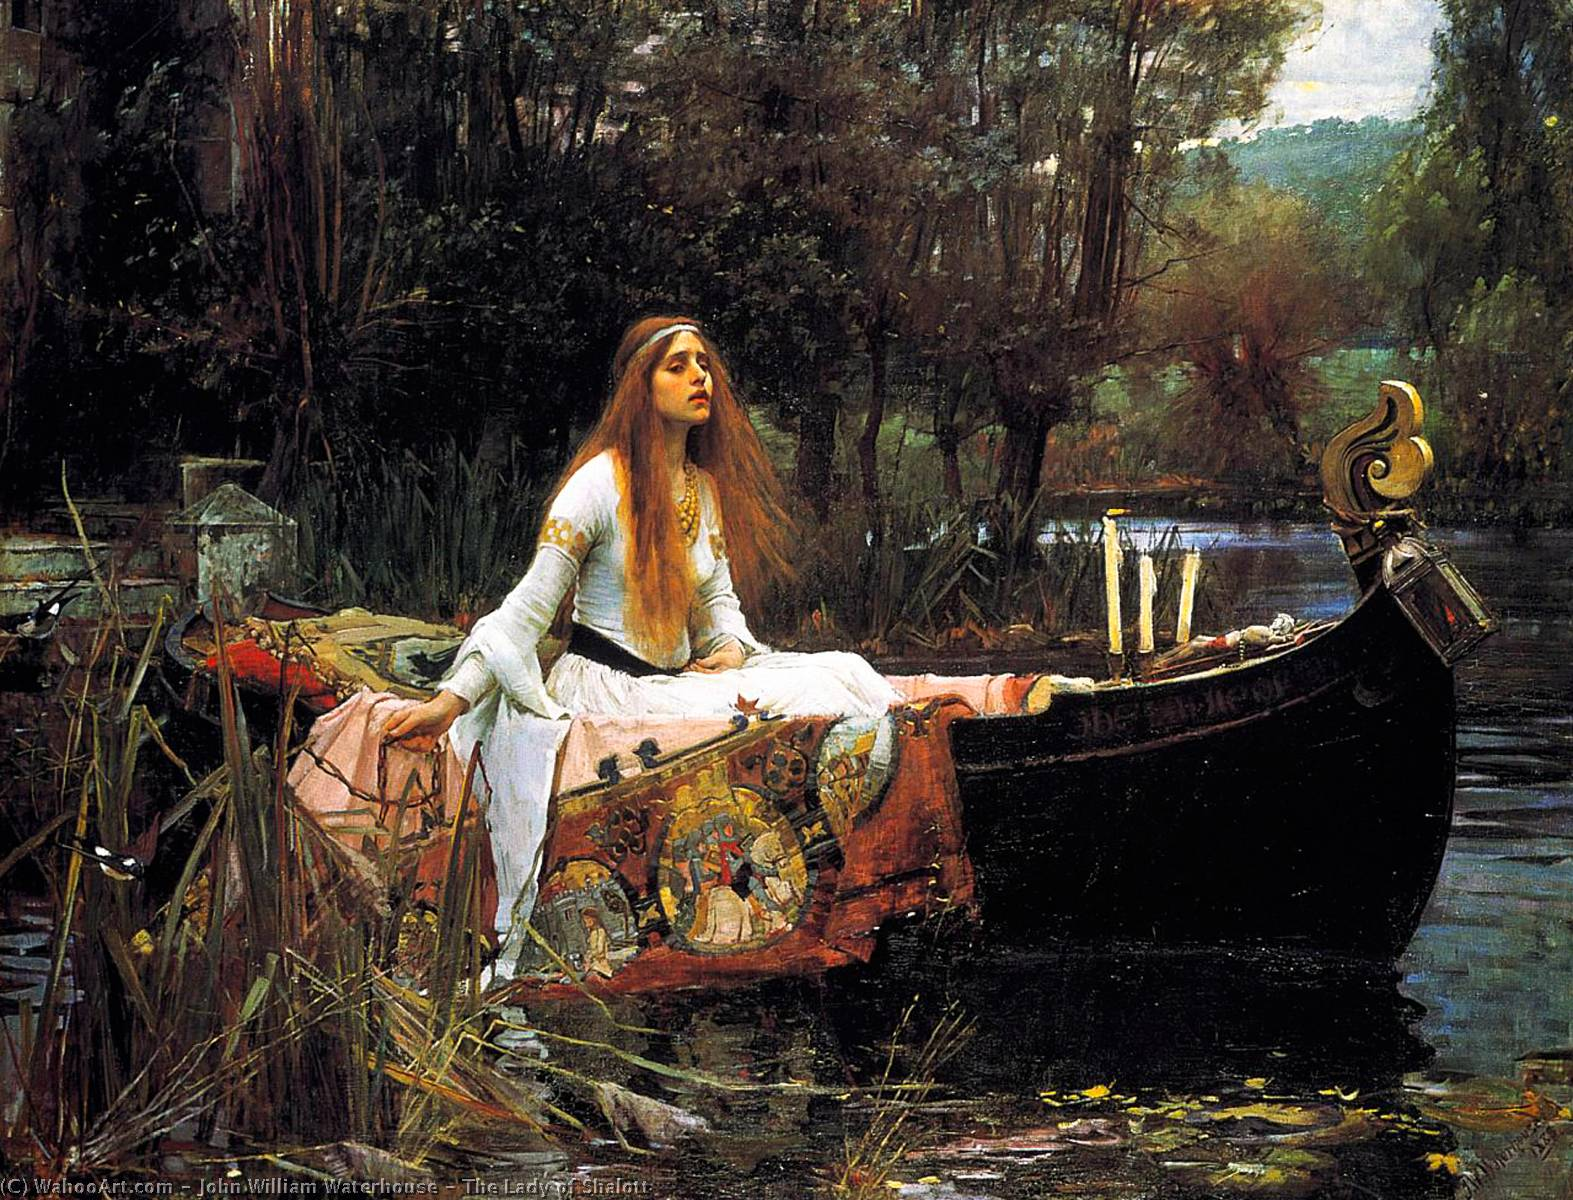 Achat Reproductions D'œuvres D'art | la dame de shalott de John William Waterhouse | Most-Famous-Paintings.com